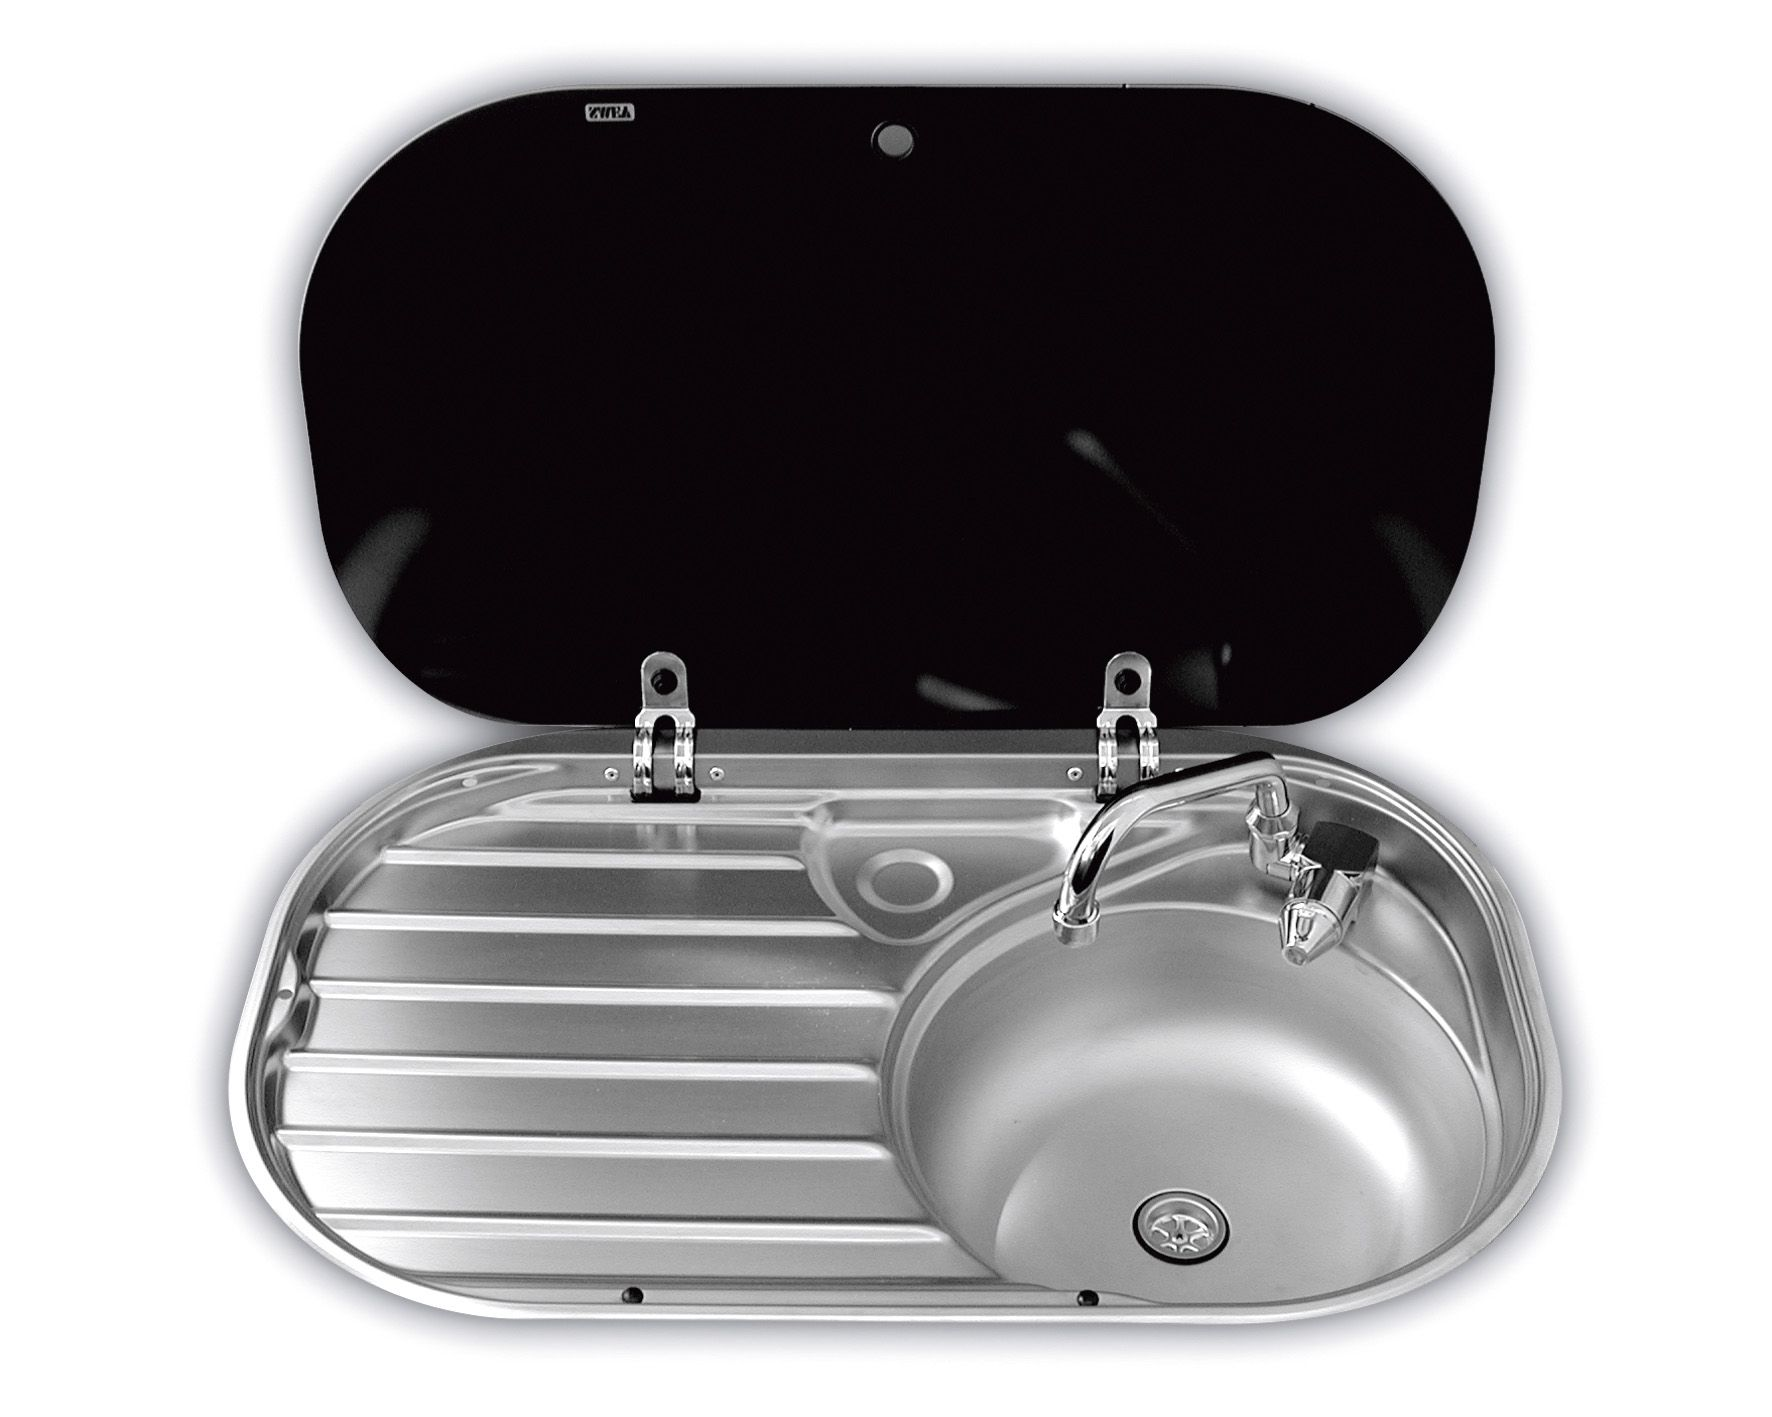 Smev Sink & Drainer with Glass Lid (8306) | Airstream Inspiration ...